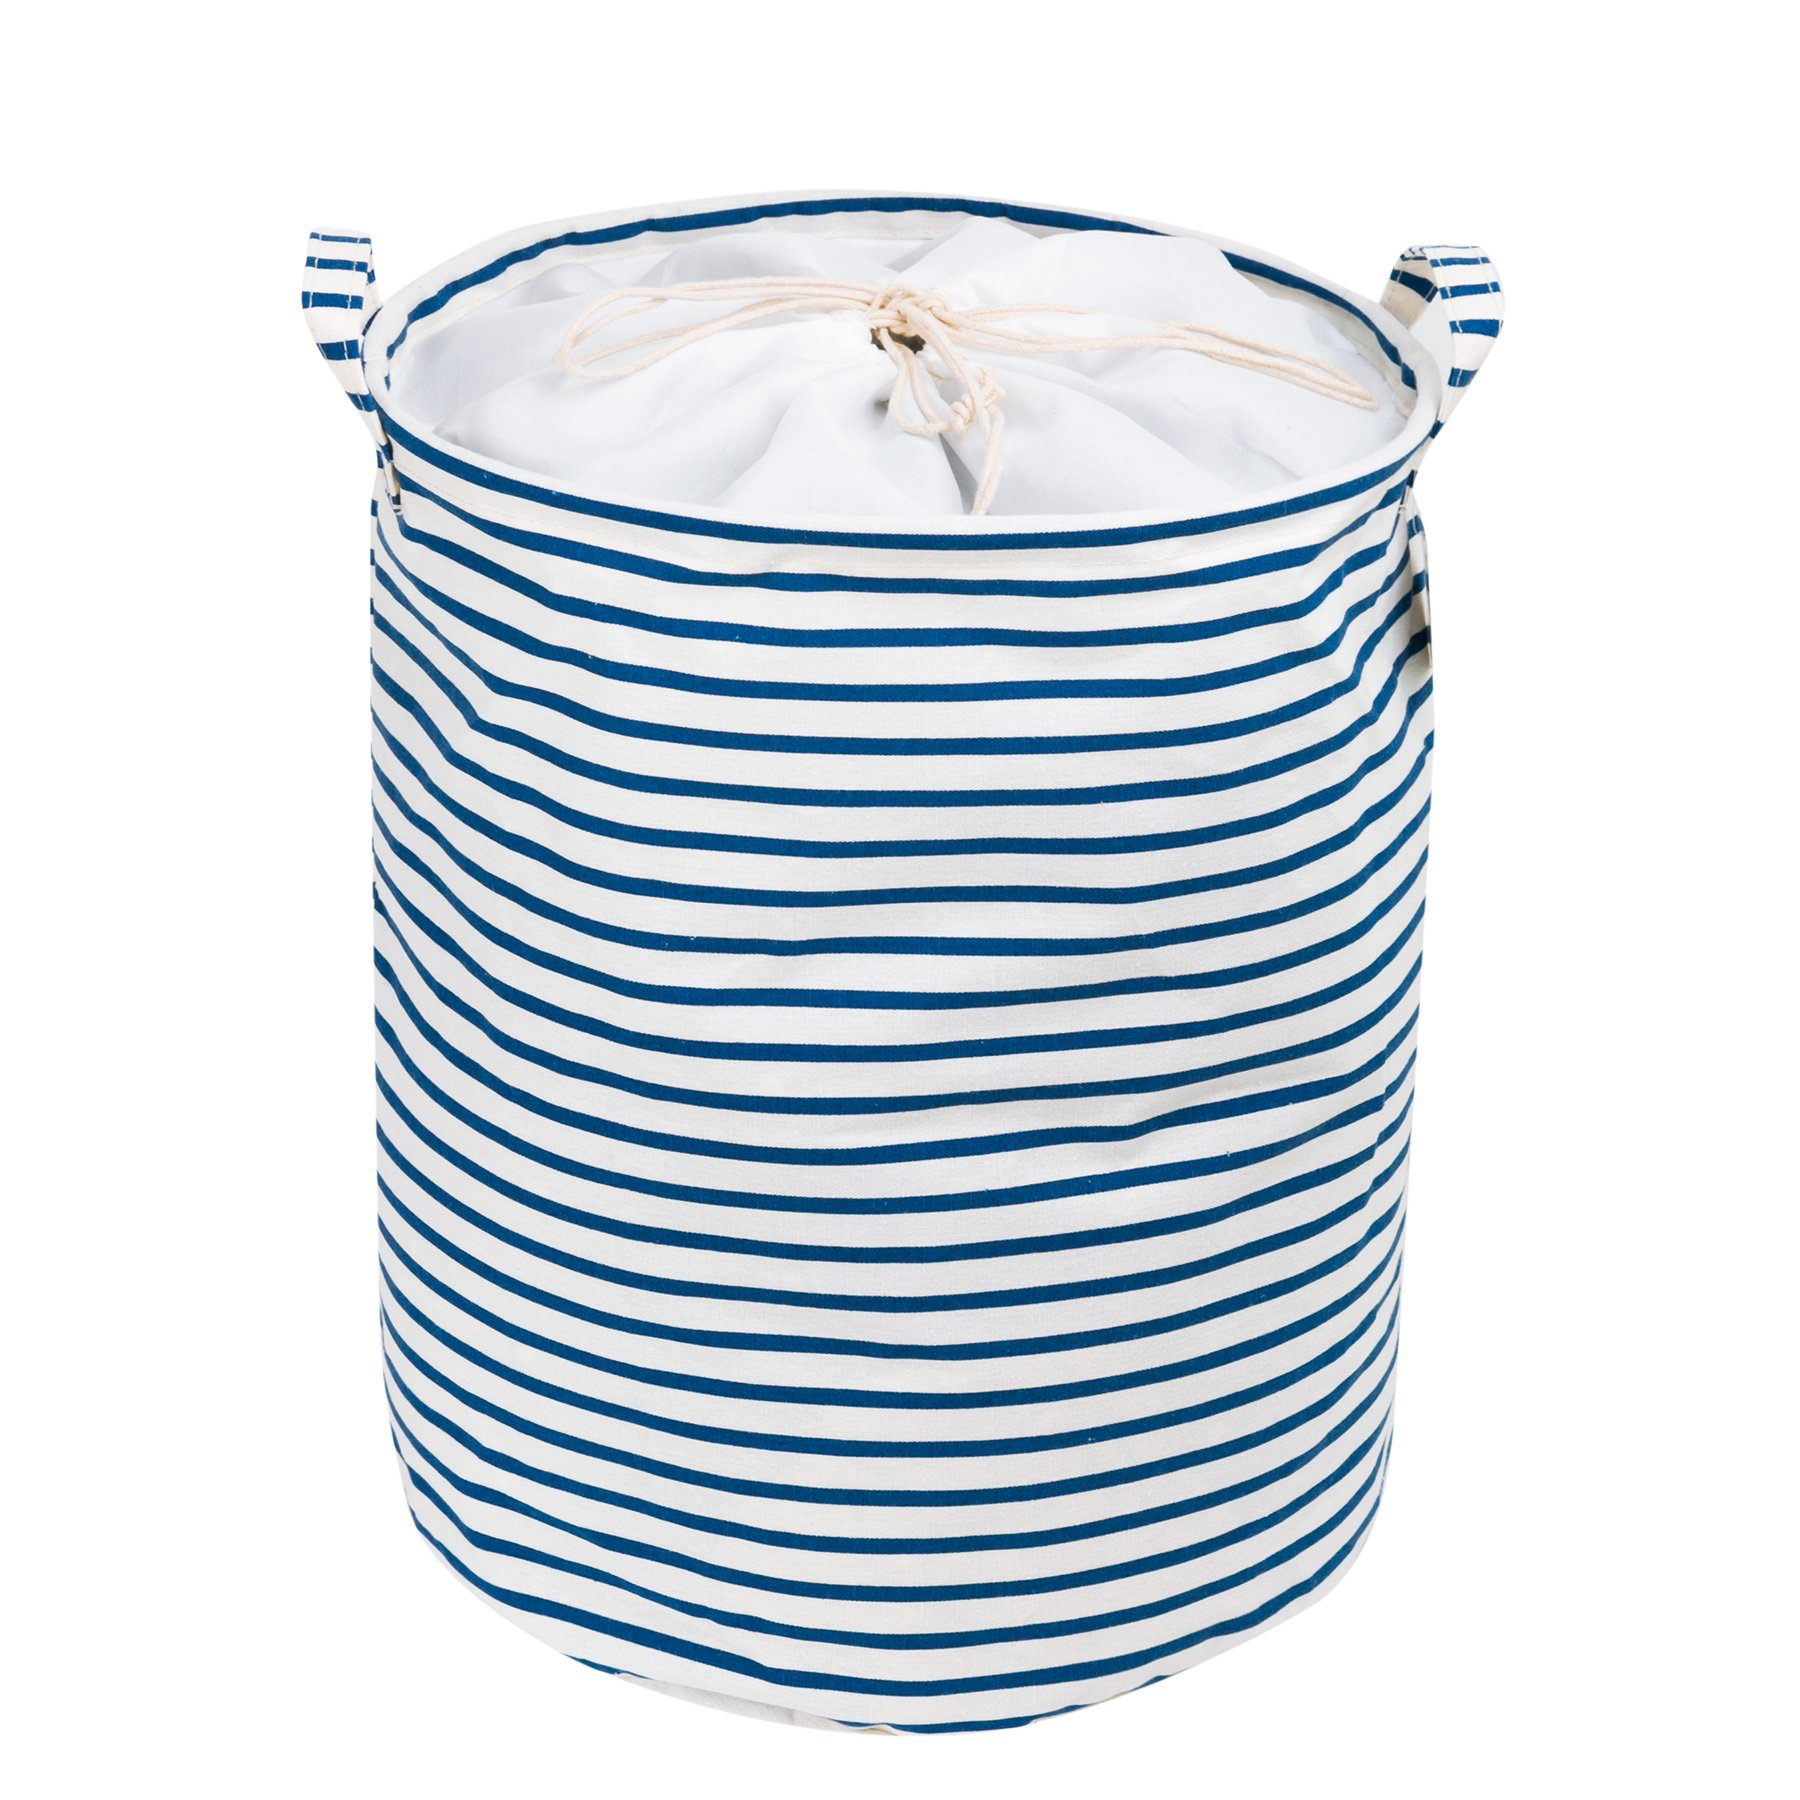 Zonyon Collapsible Laundry Hamper, 15.7'' Jumbo Large Dirty Clothes Laundry Storage Basket with Drawstring for Kids,Boys,Girls,Toys,Closet,College Dorm,Bathroom,Blue White Strips